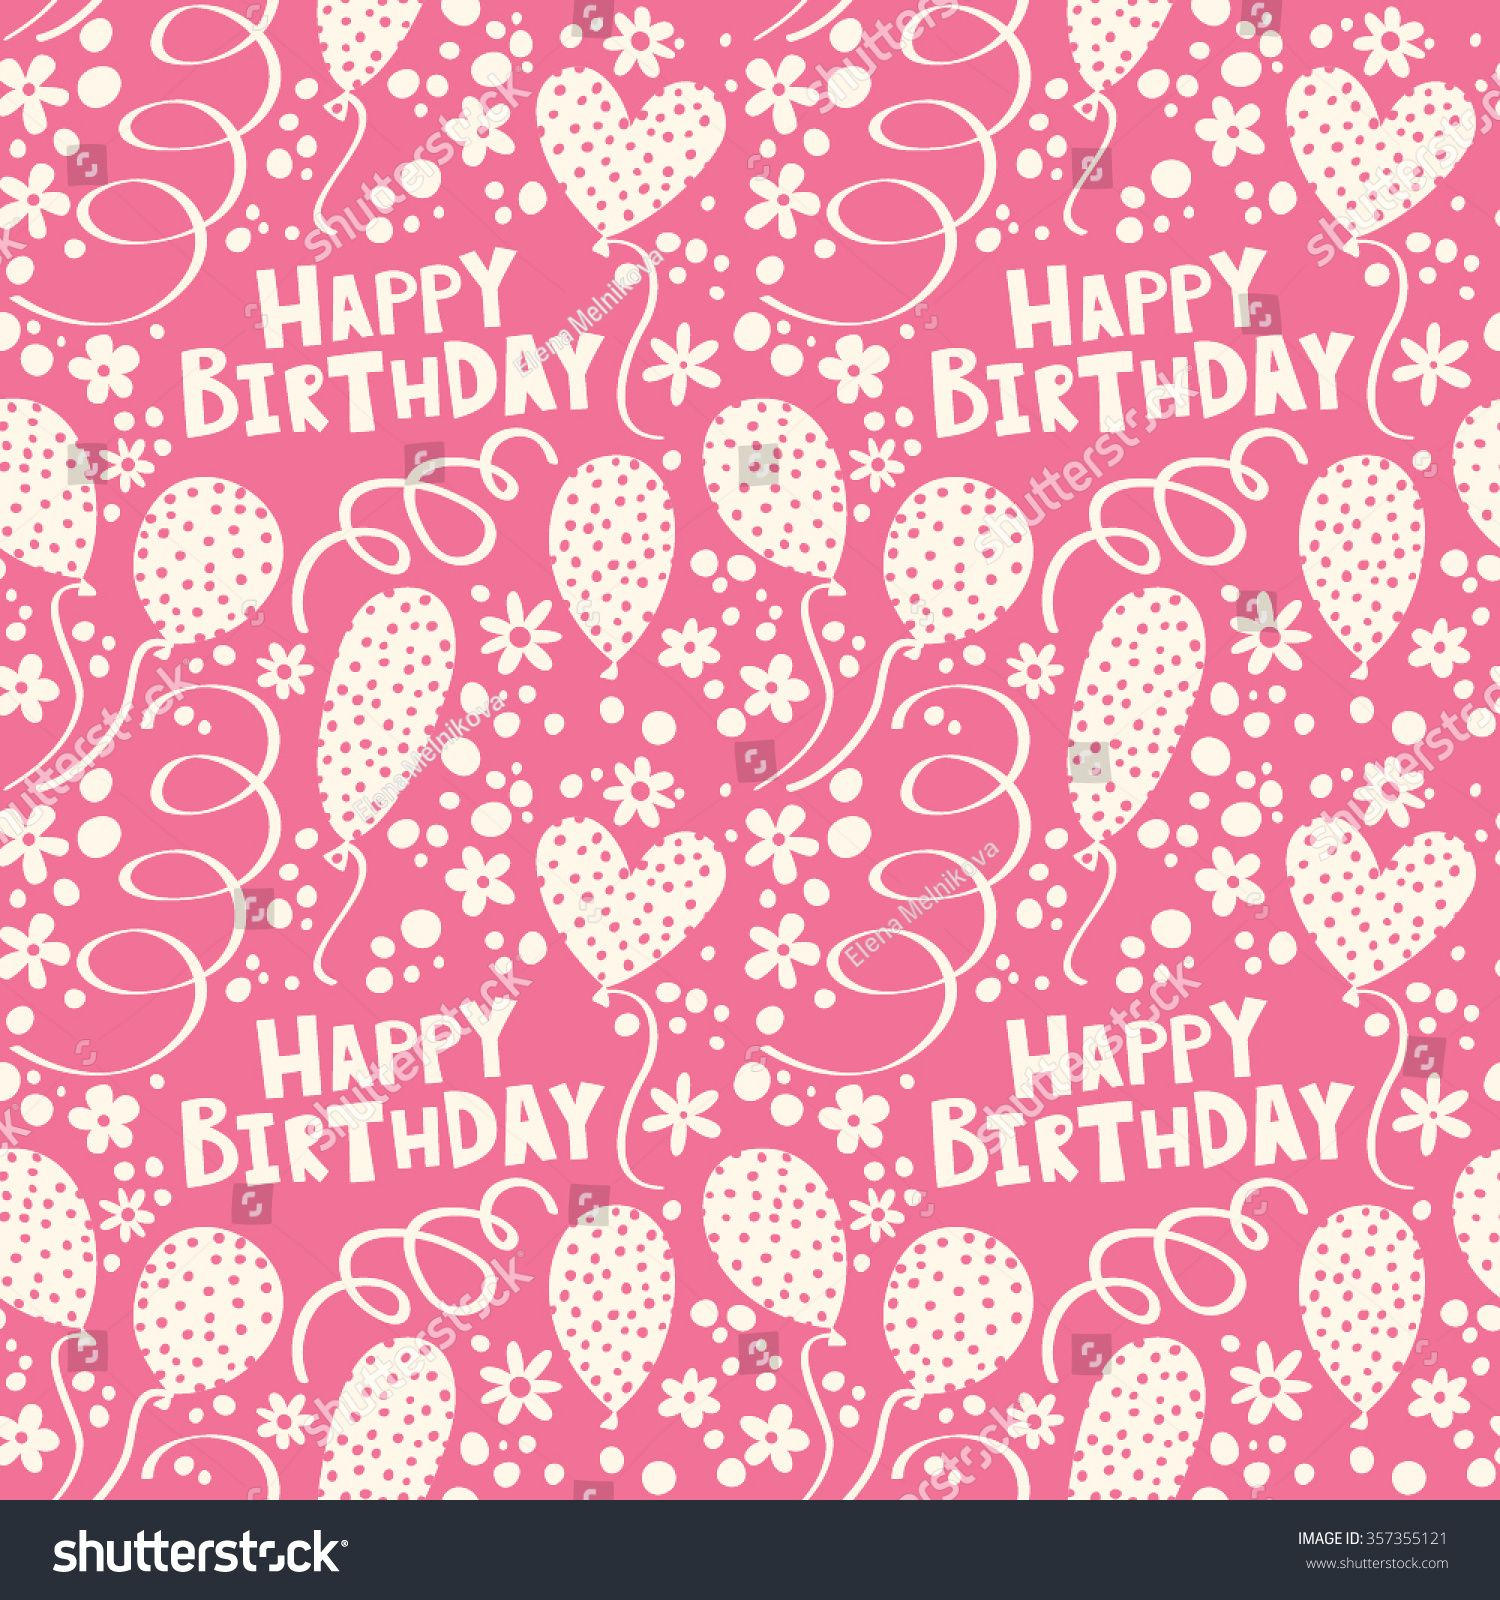 20+ Ide Design Wallpaper Pink Birthday Background ...